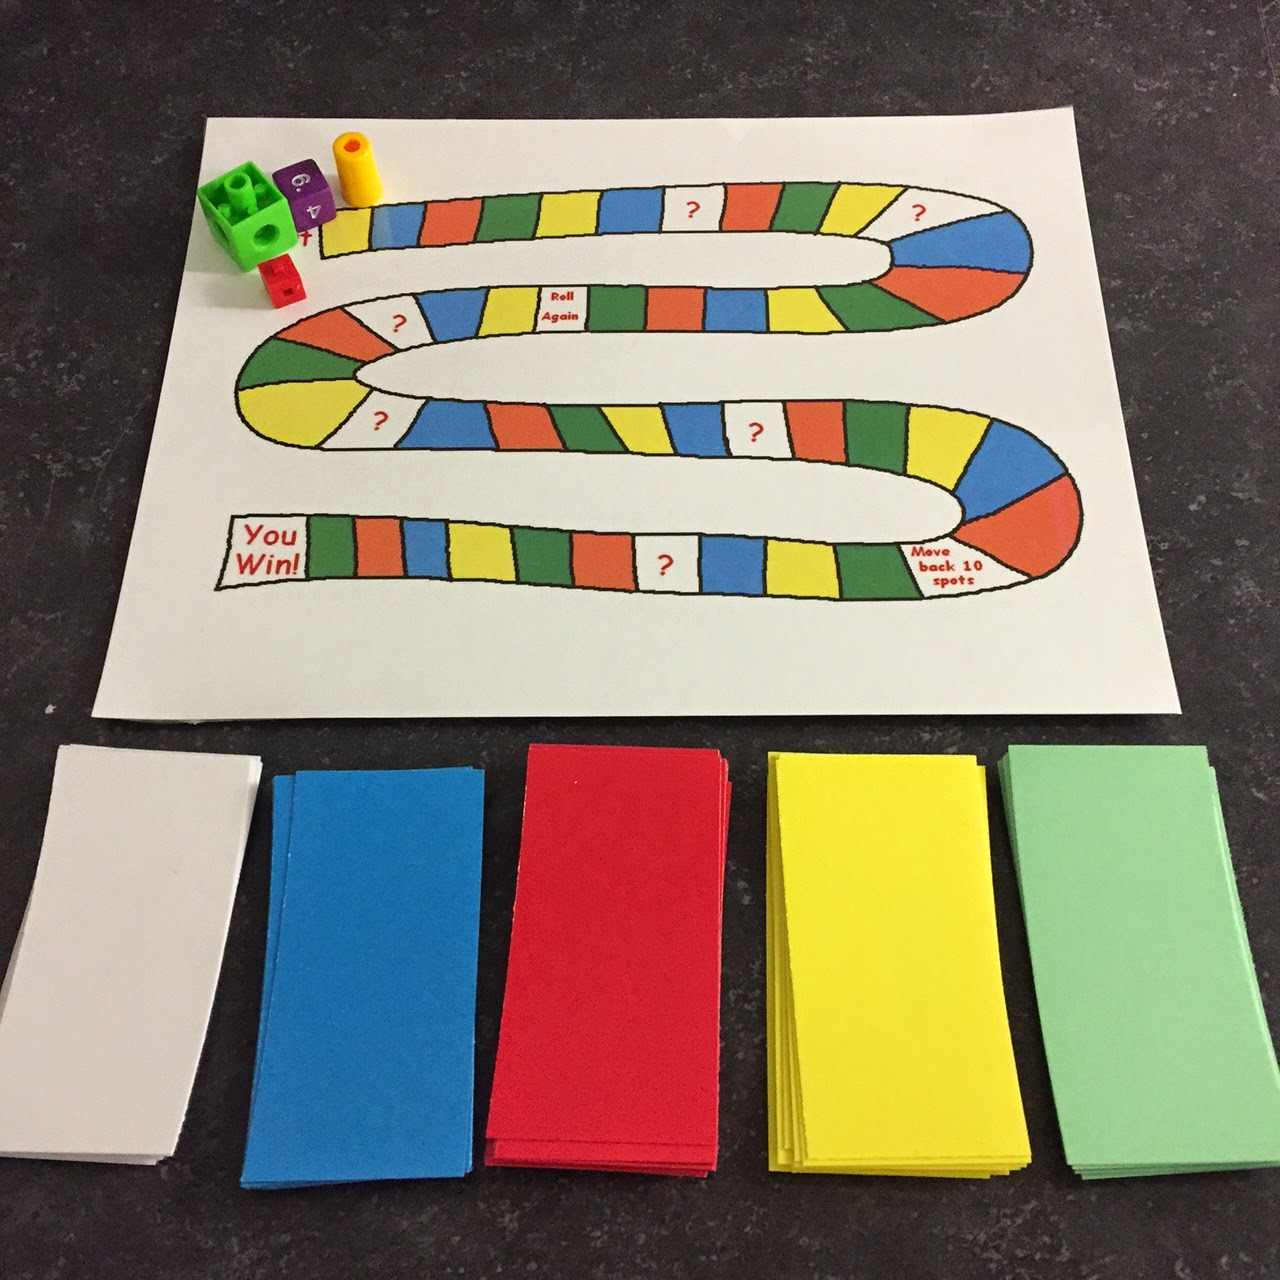 Engaging Math: Geometry Board Game